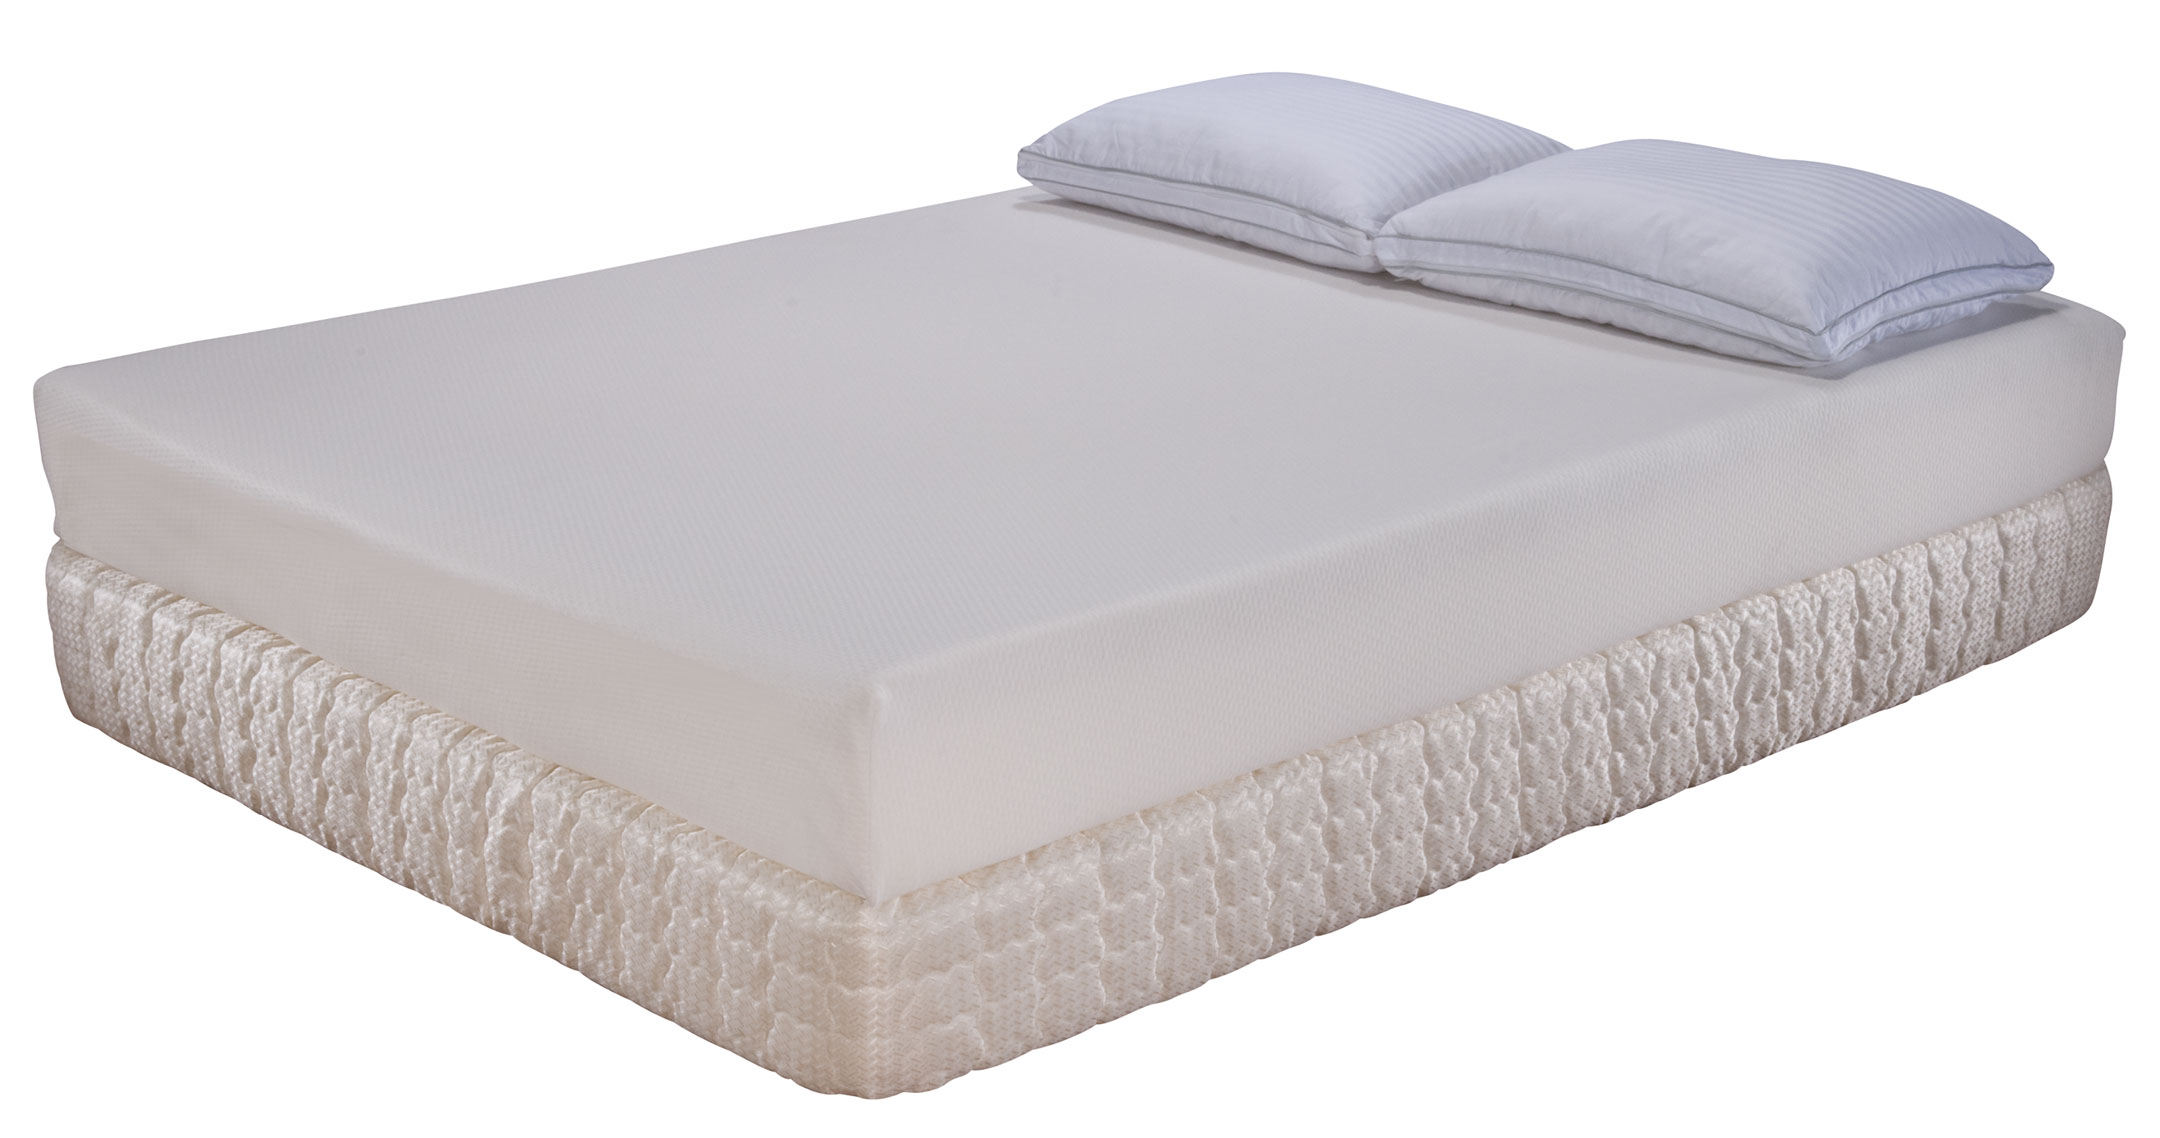 Serta Perfect Elements Apple Valley Plush Mattress